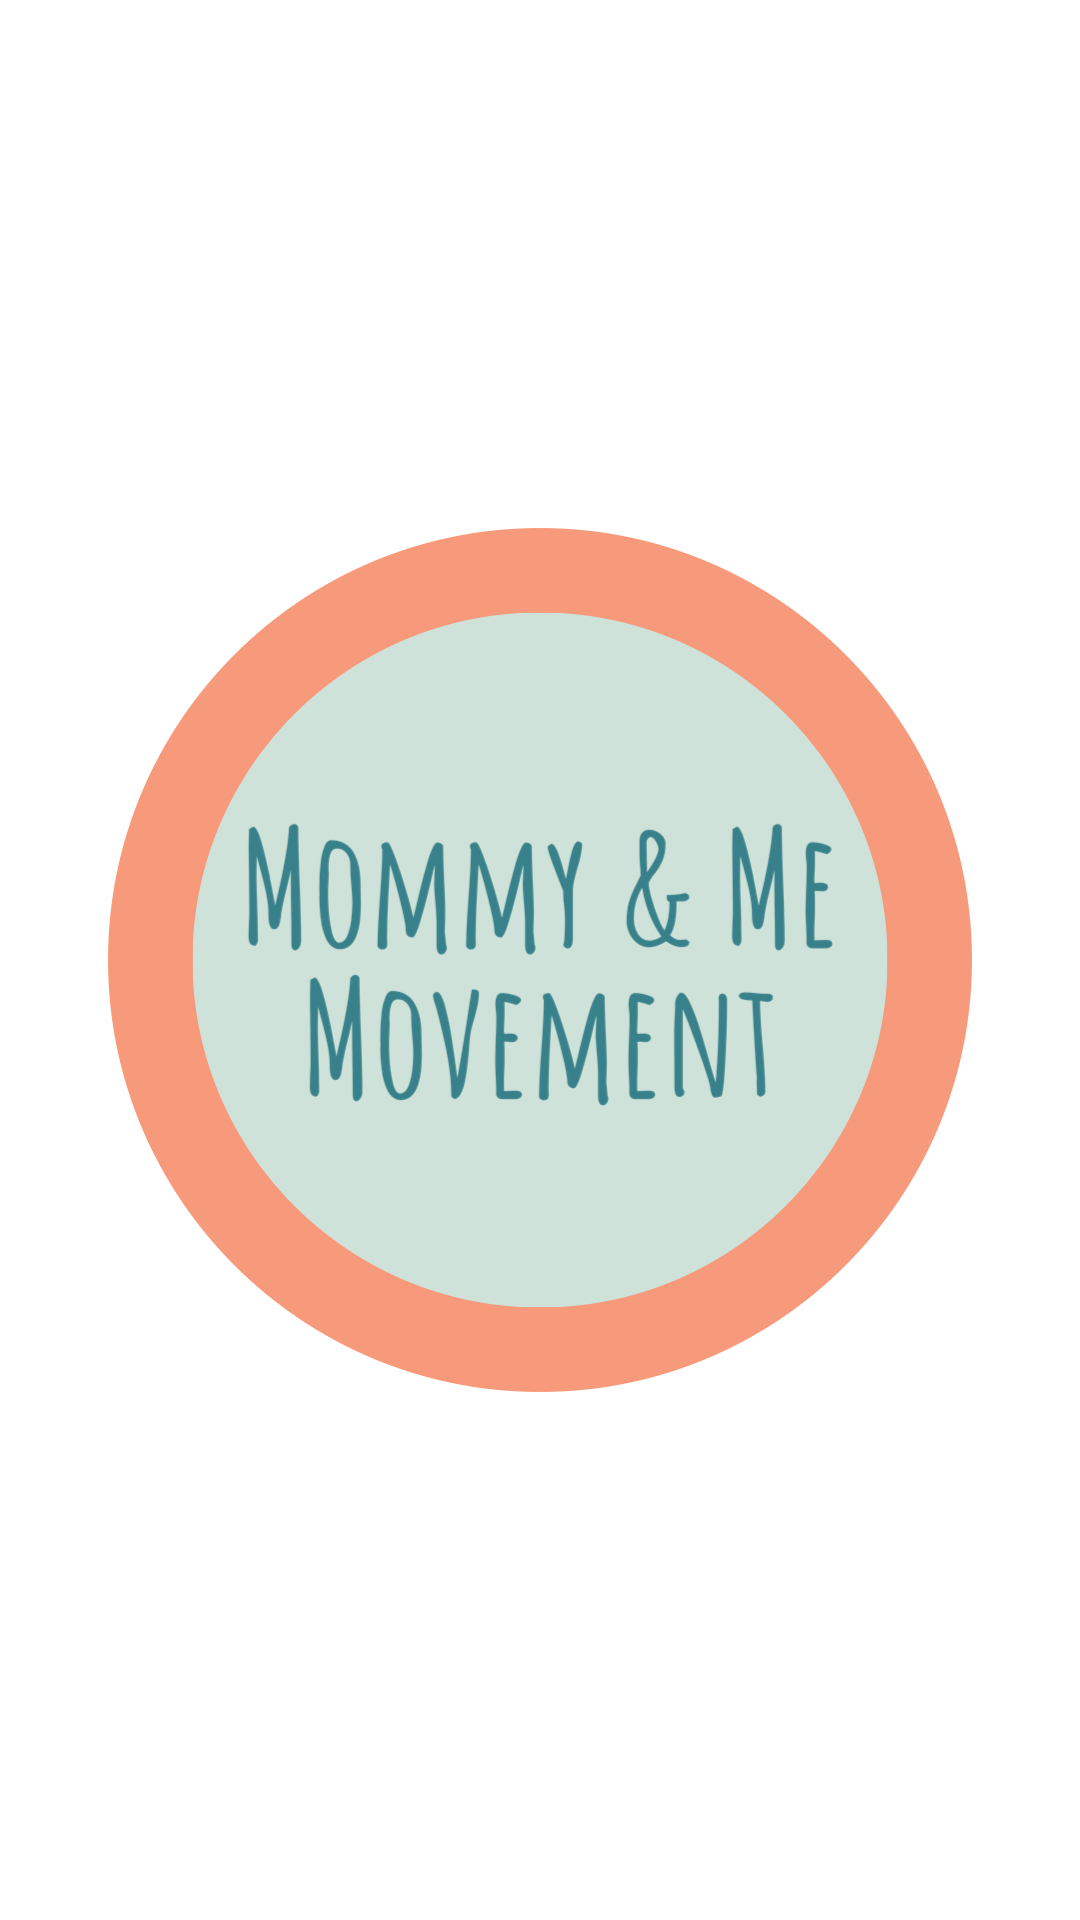 Mommy & Me Movement